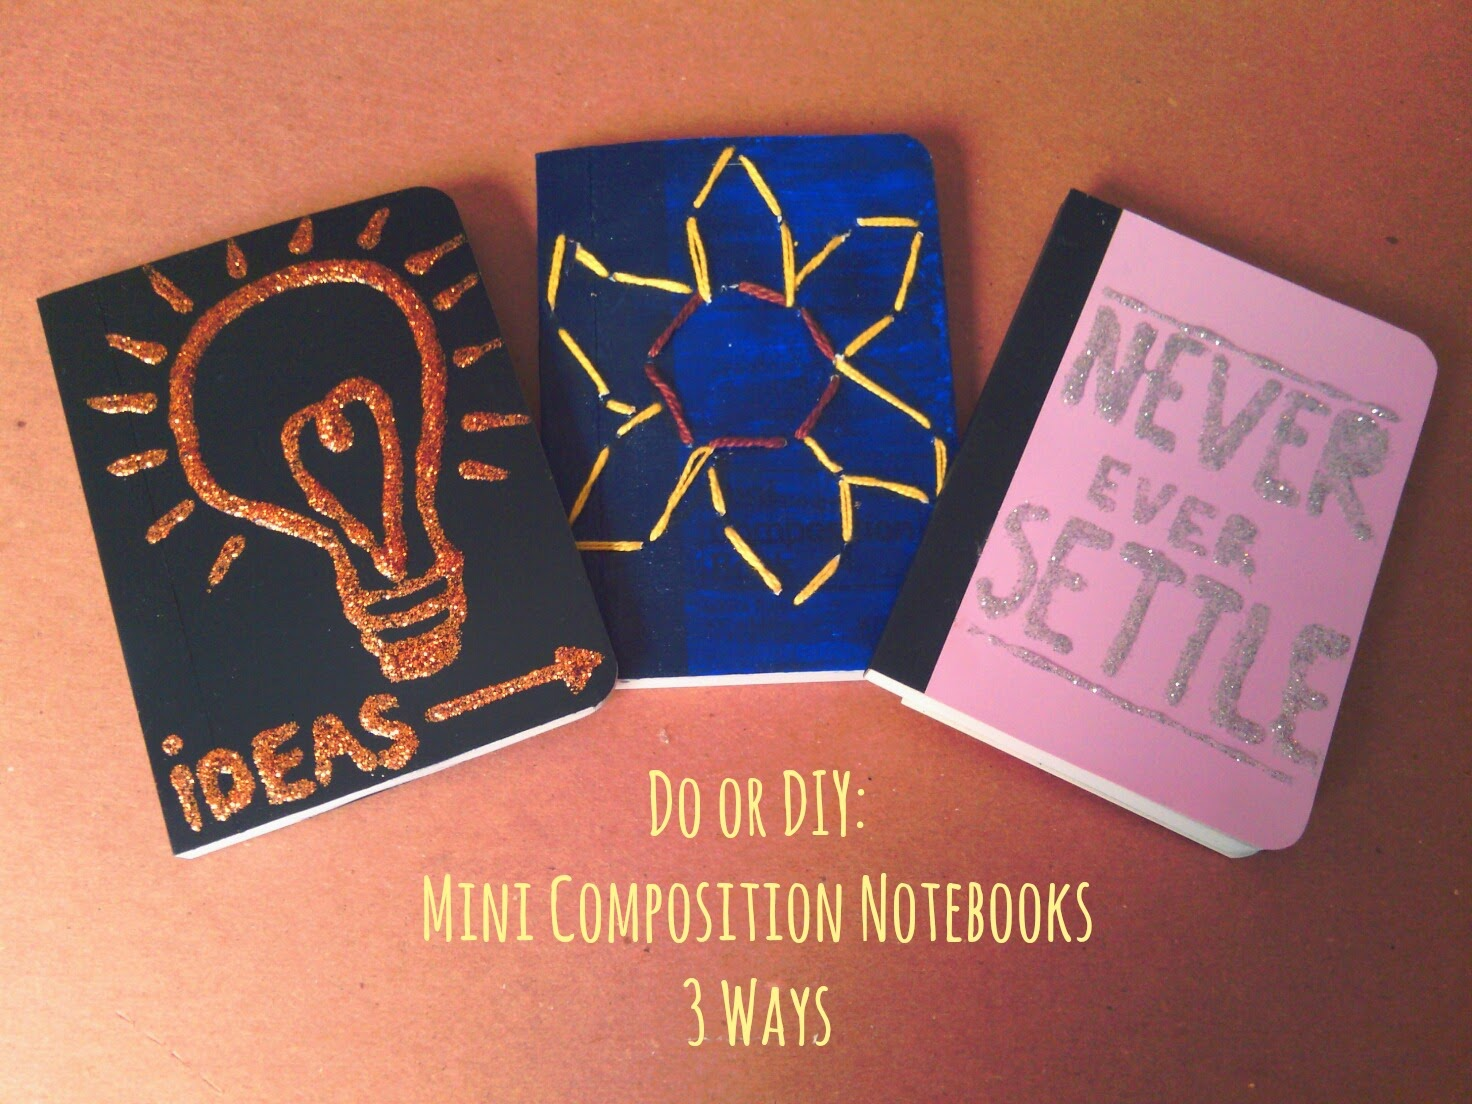 Alice In Wonderland Book Cover Ideas ~ Do or diy: mini composition notebooks in 3 ways bunny & fawn